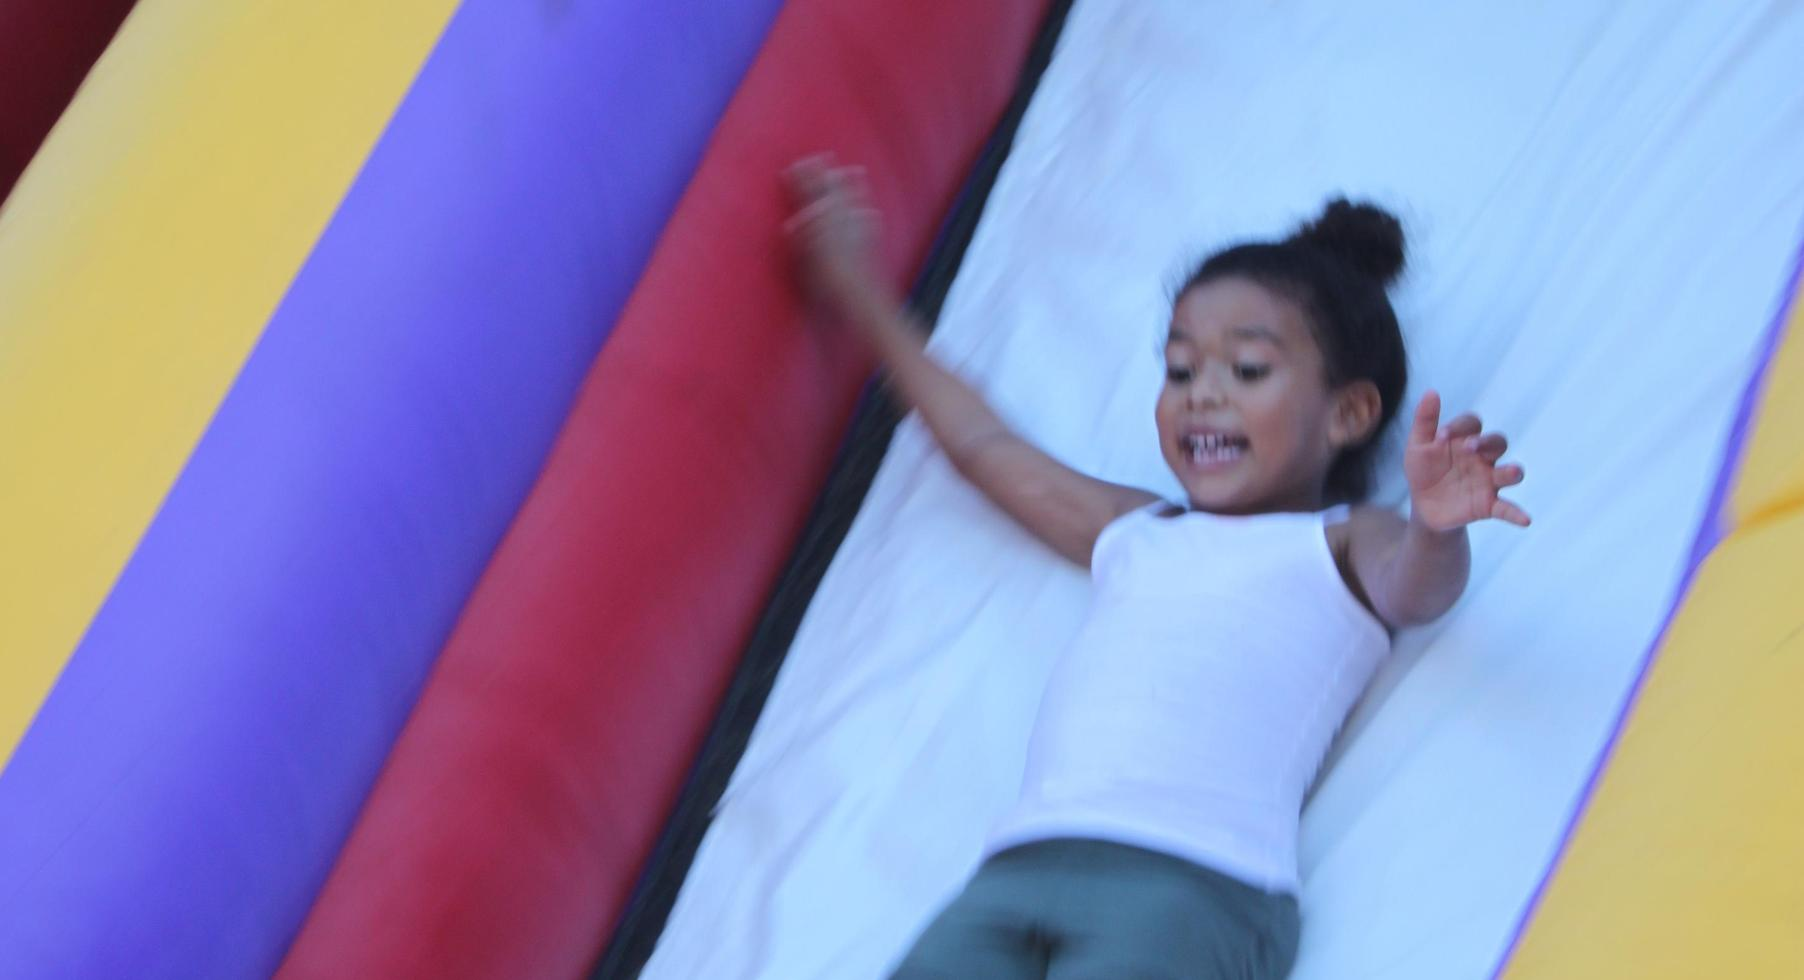 FunFestival for Education: Coming down the slide.